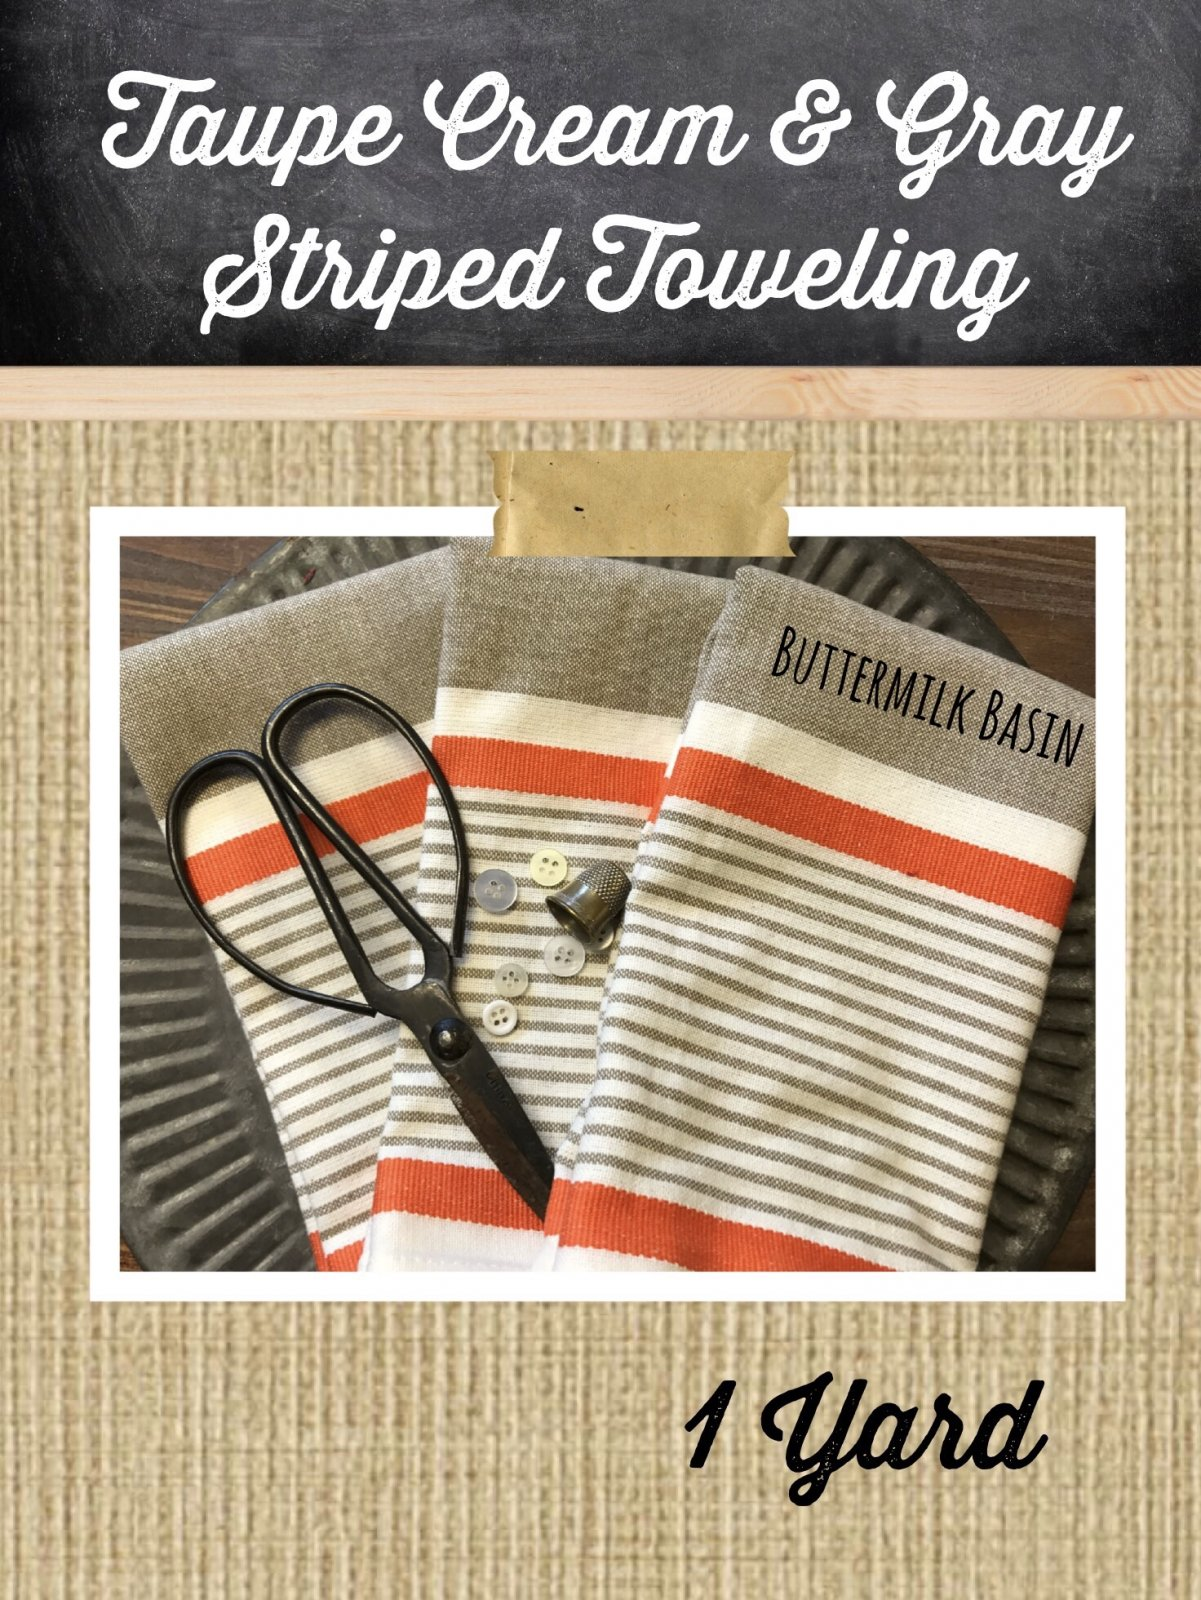 Taupe, Cream, and Gray Striped Toweling